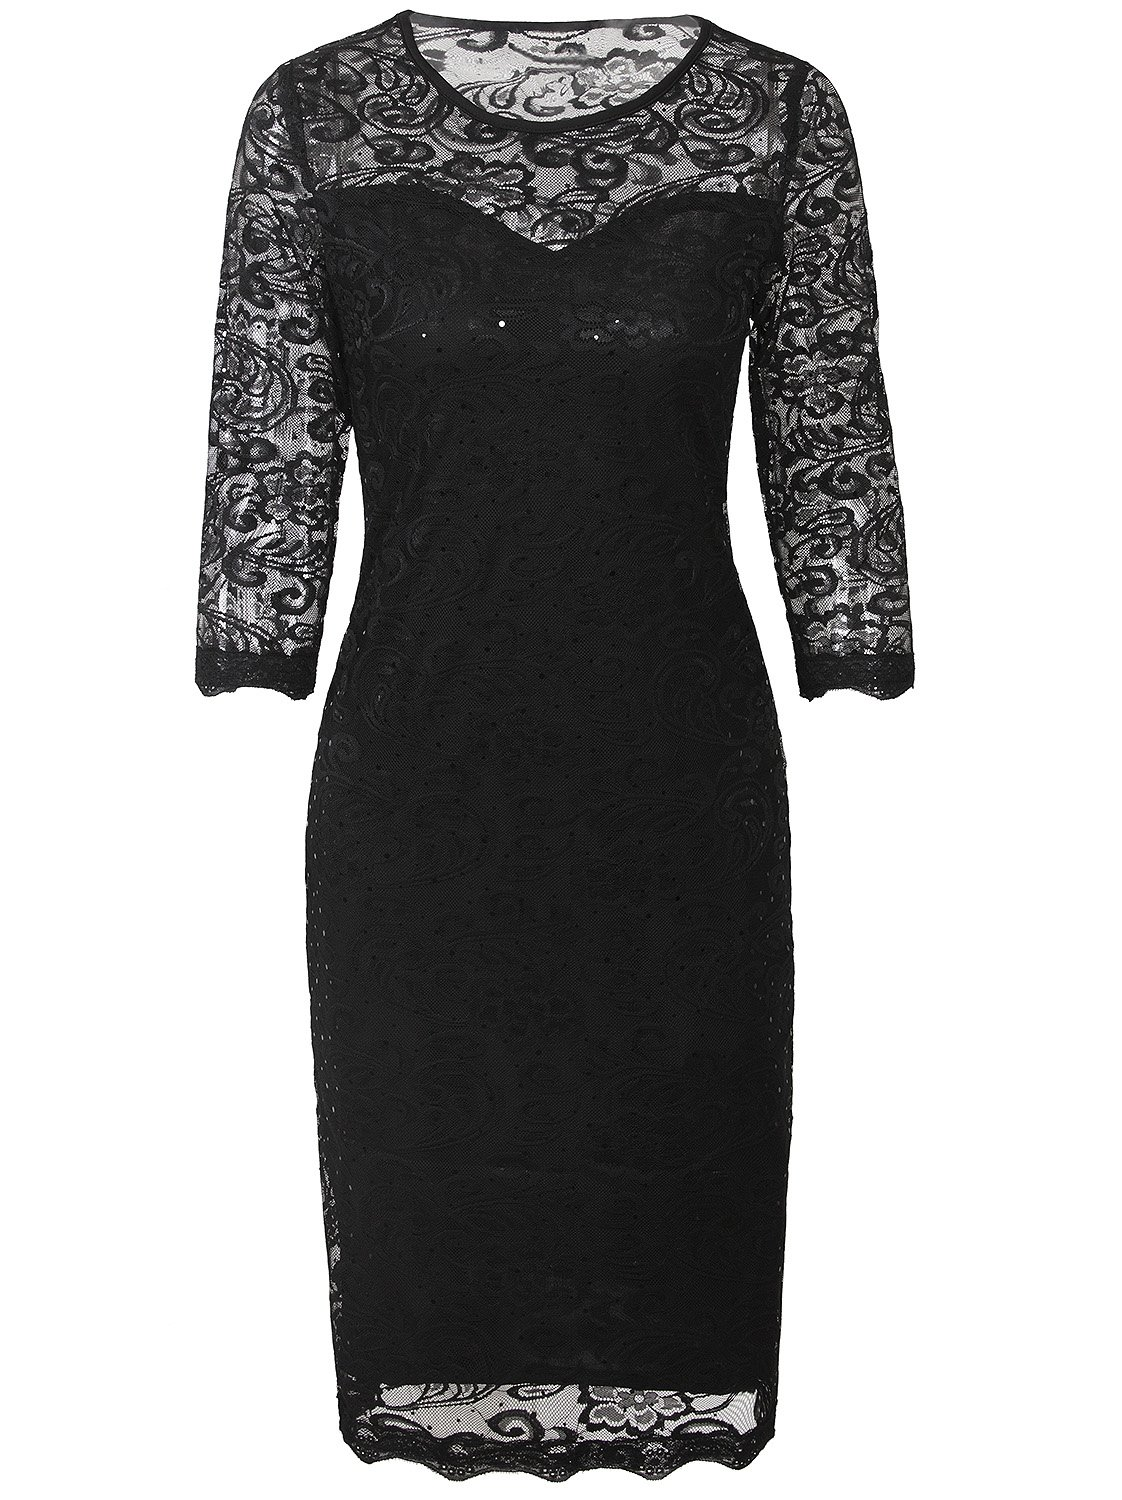 Vijiv Vintage Sequin Lace Cocktail Flapper Dress With 3/4 Sleeves For Wedding Party, Black, Small